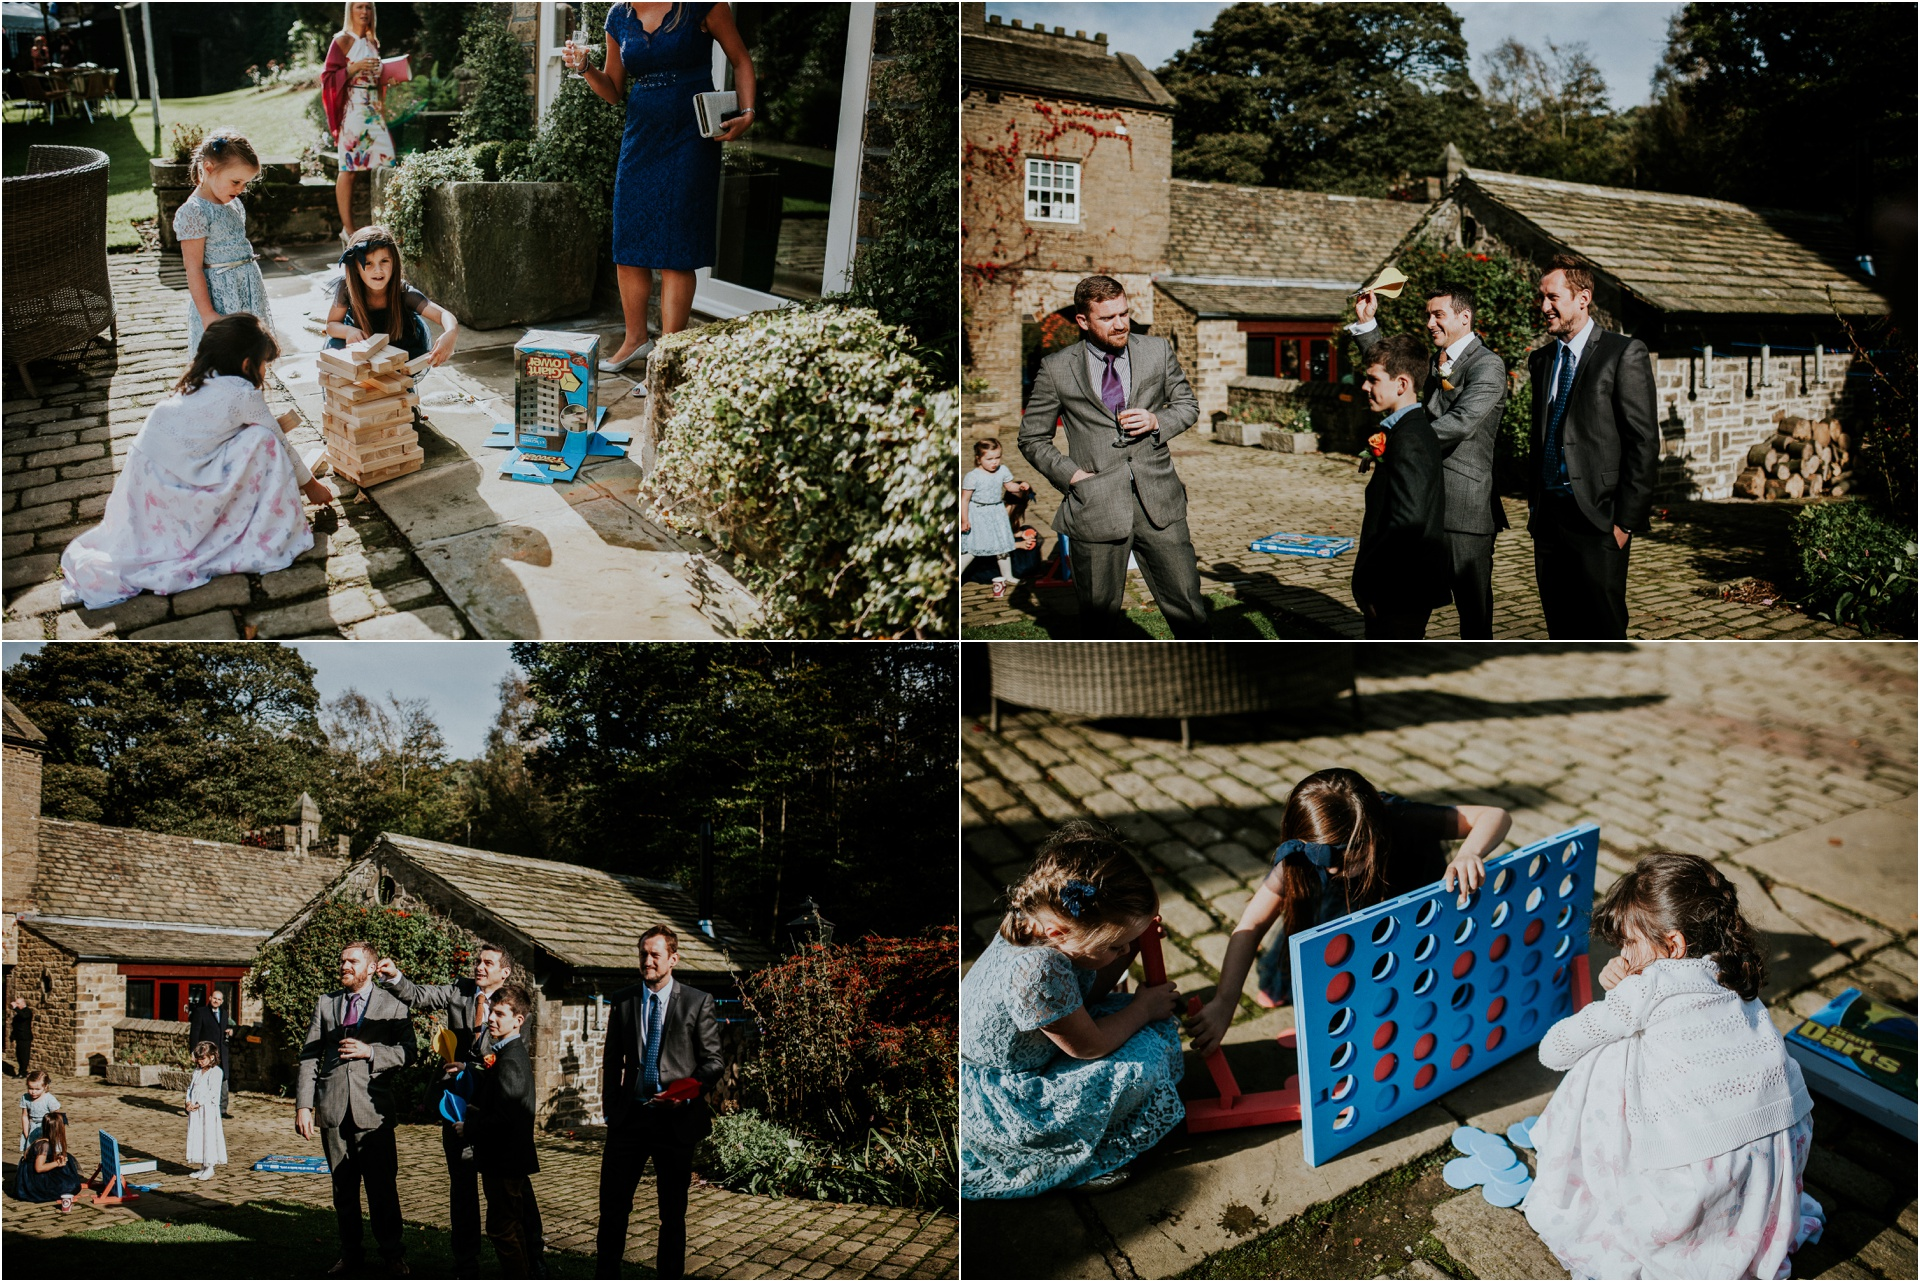 Beautiful same sex wedding at Carr Hall Castle in Yorkshire, documentary wedding photography, autumn wedding, Carr Hall Castle,, Carr Hall Castle Wedding, Yorkshire Wedding photographer, same sex wedding photographer, lawn games